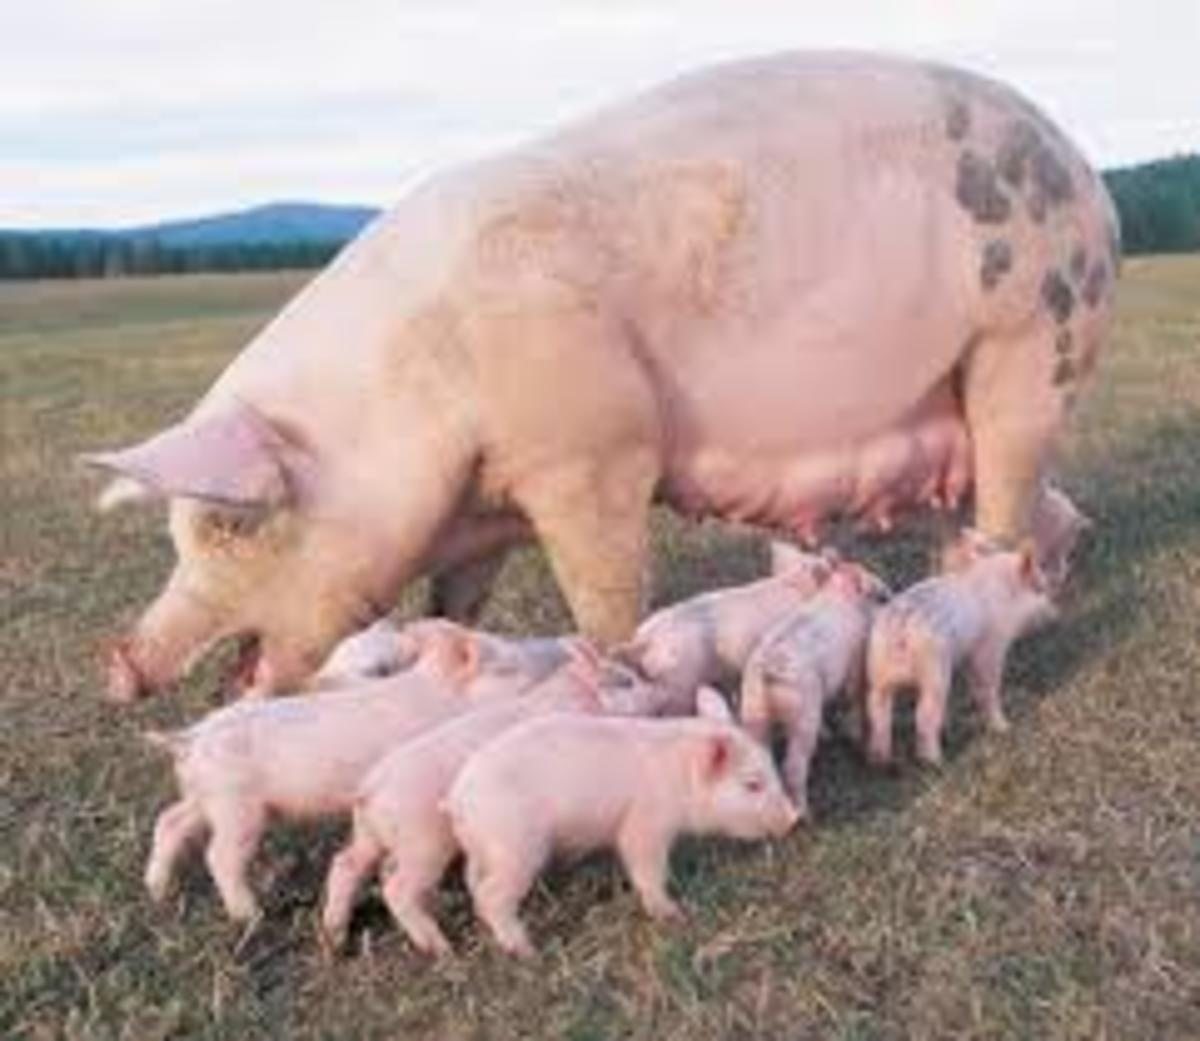 Mother pig and her piglets, did you know that every piglet has got his own tit to feed themselves.from their mother milk?